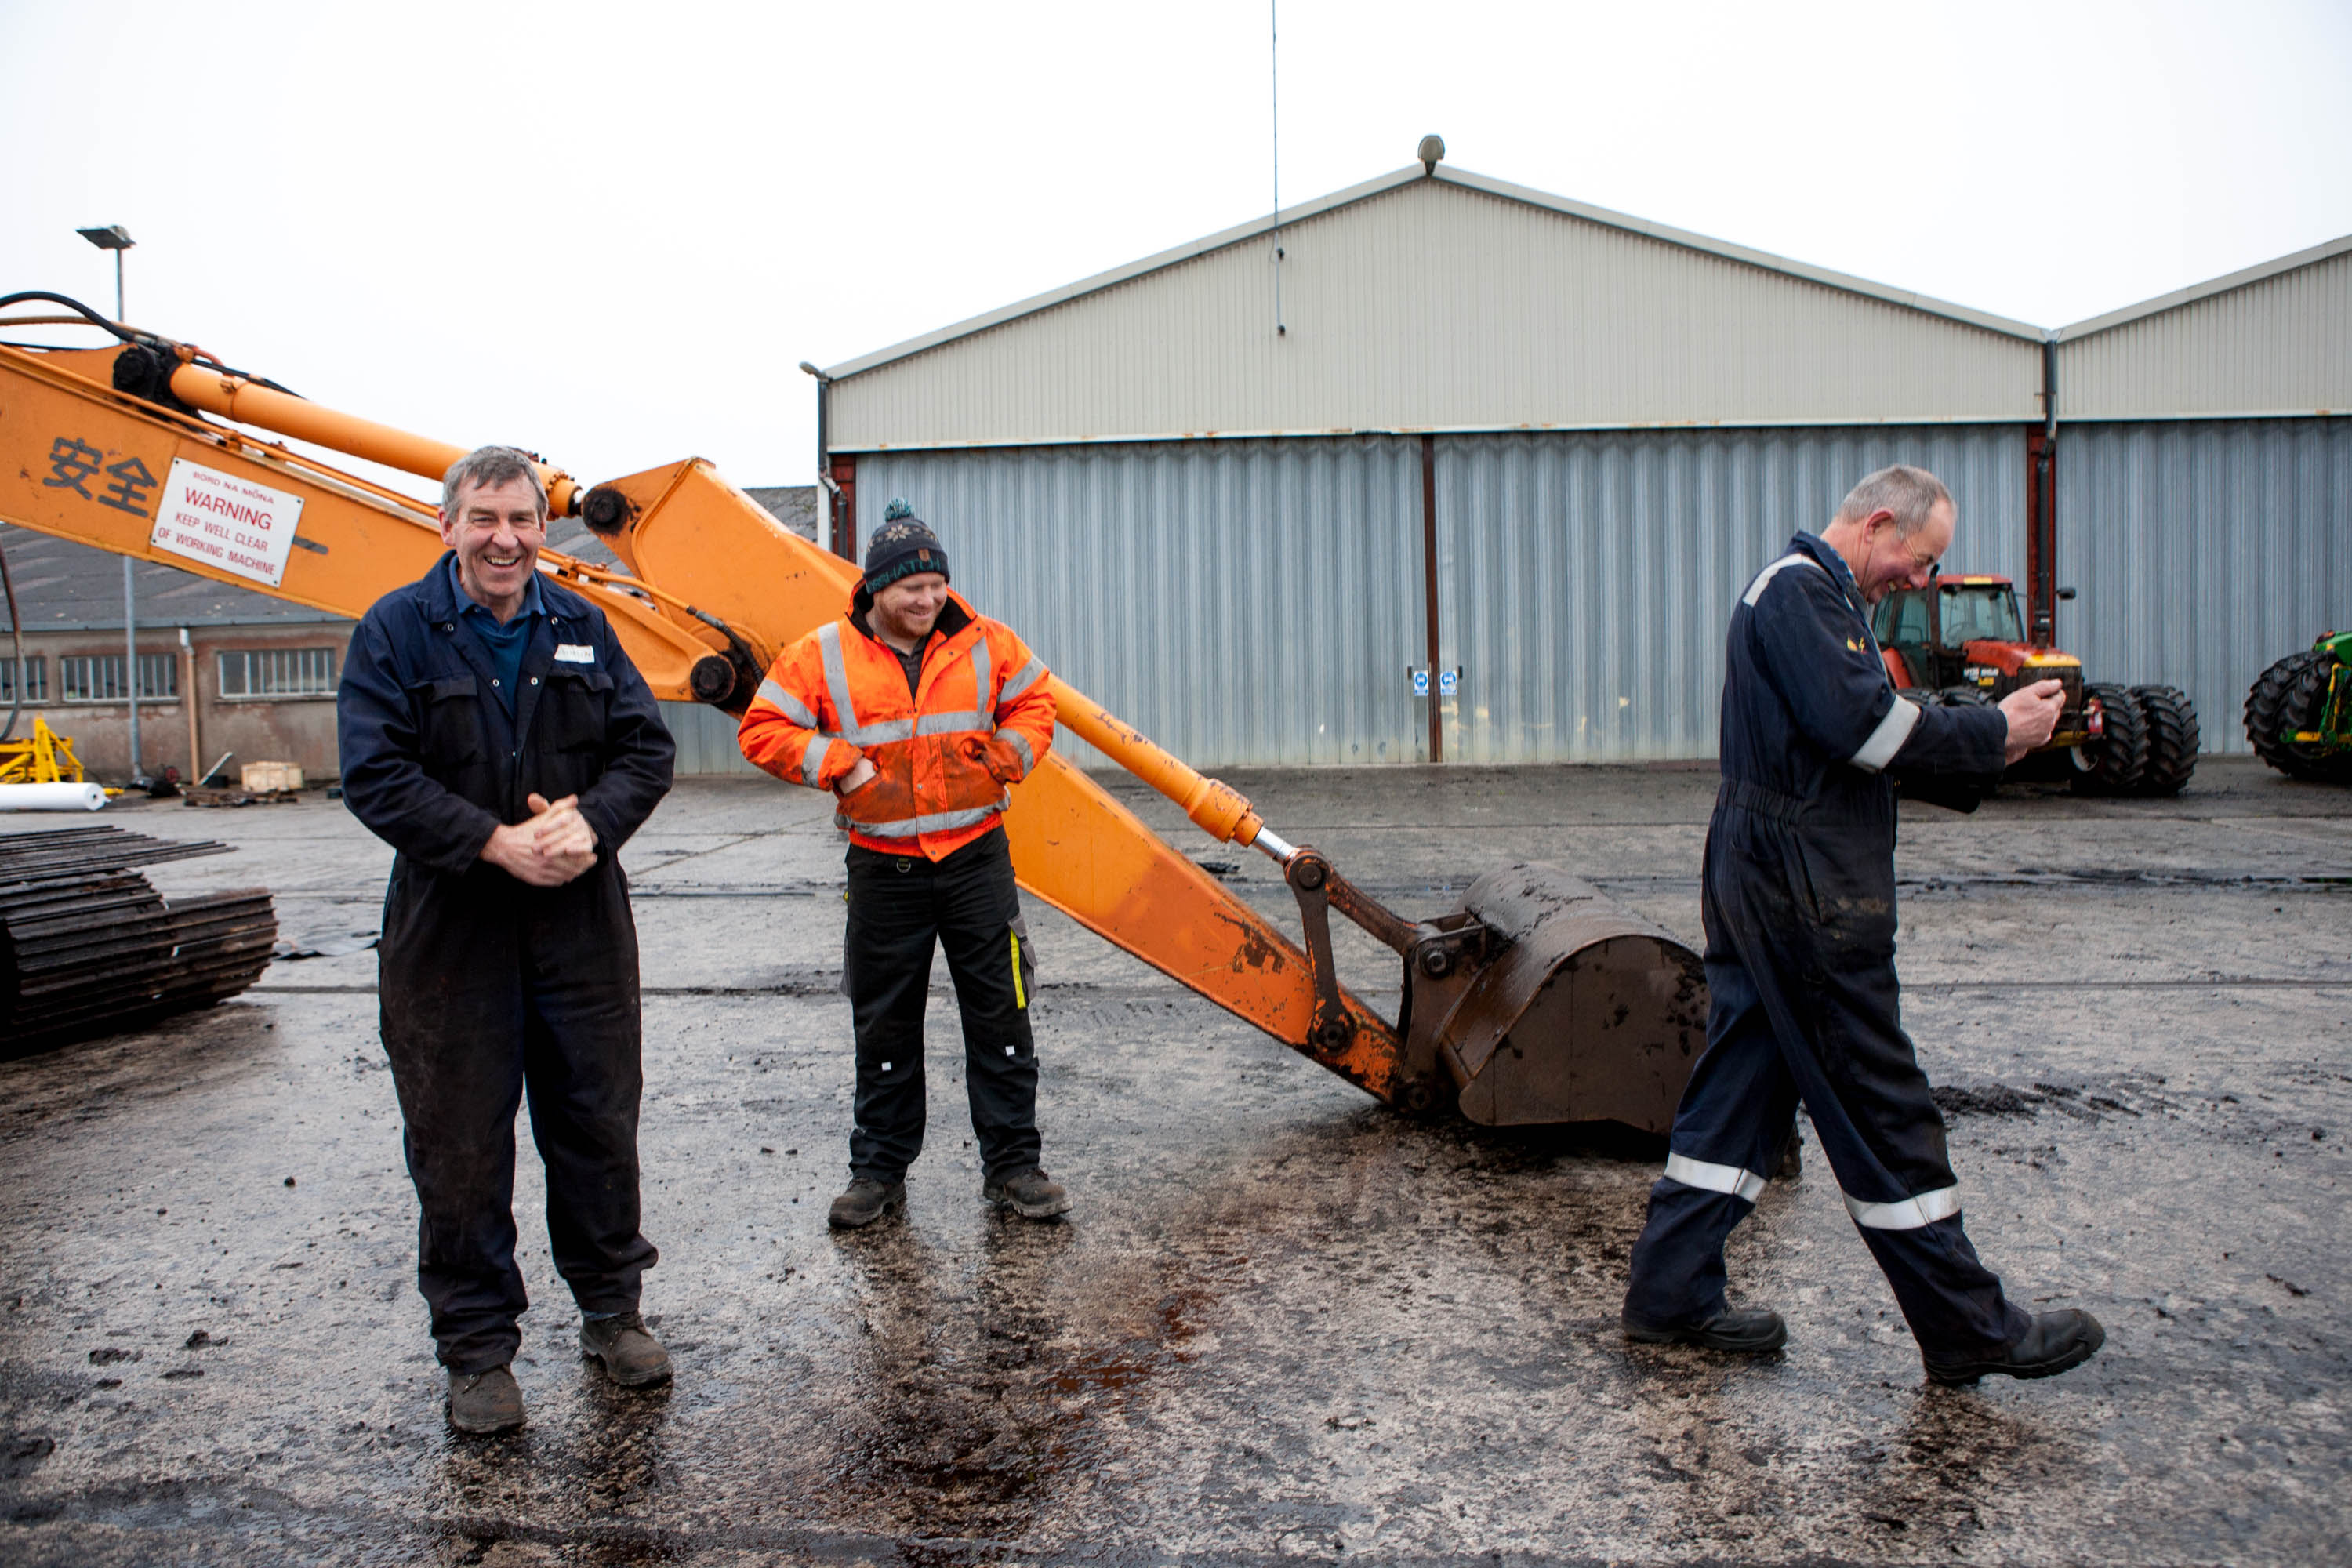 Derryfada workers Liam Burke (left), Robert Kenny and Pat Hurley have worked in the bog for 97 years, collectively.